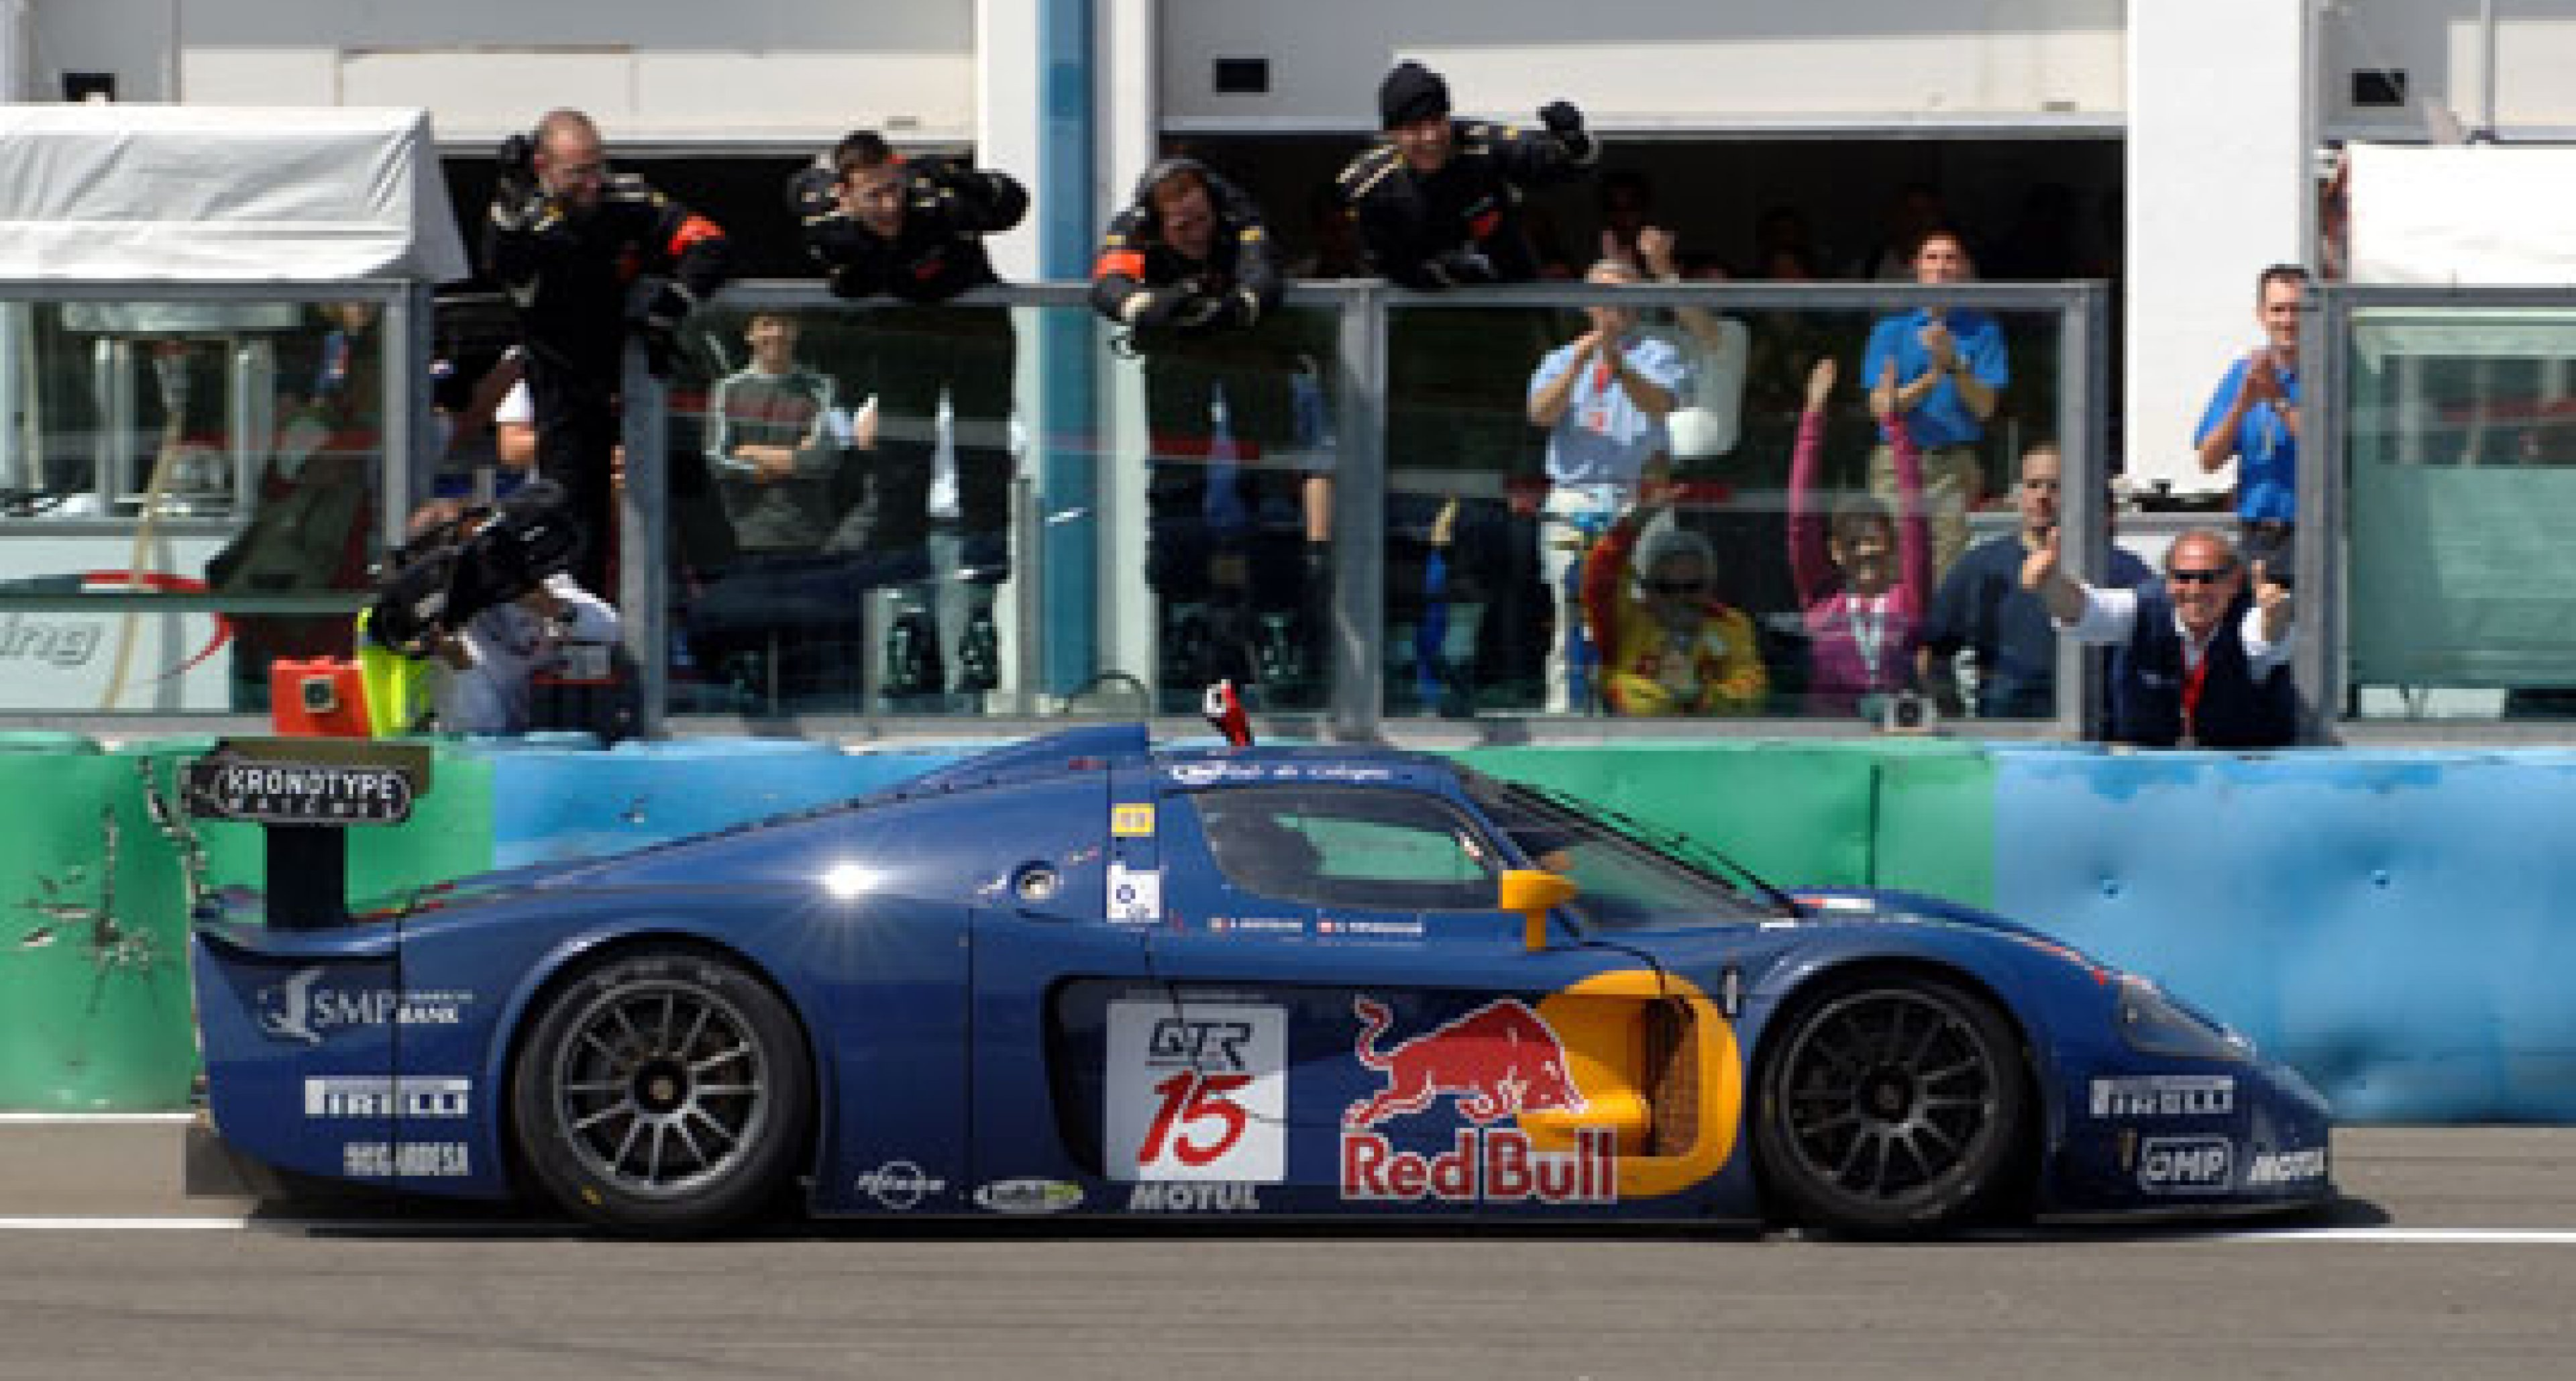 FIA GT at Magny Cours